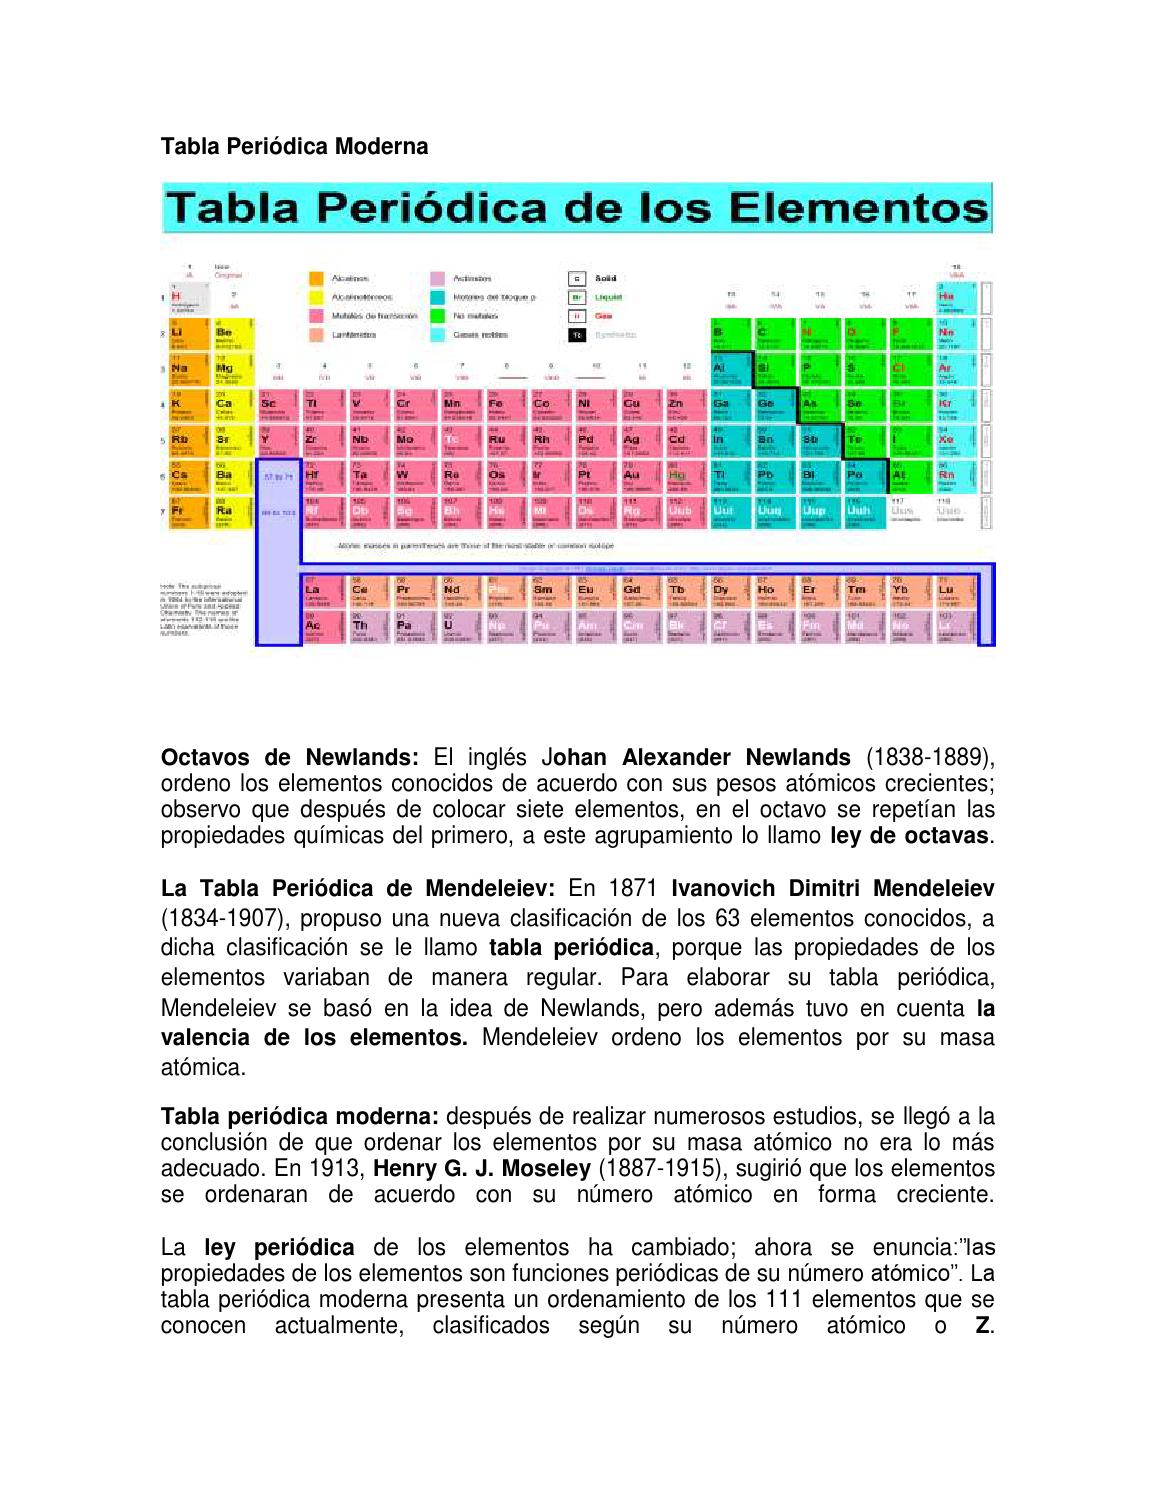 Tabla peridica moderna by javier cifuentes issuu urtaz Image collections